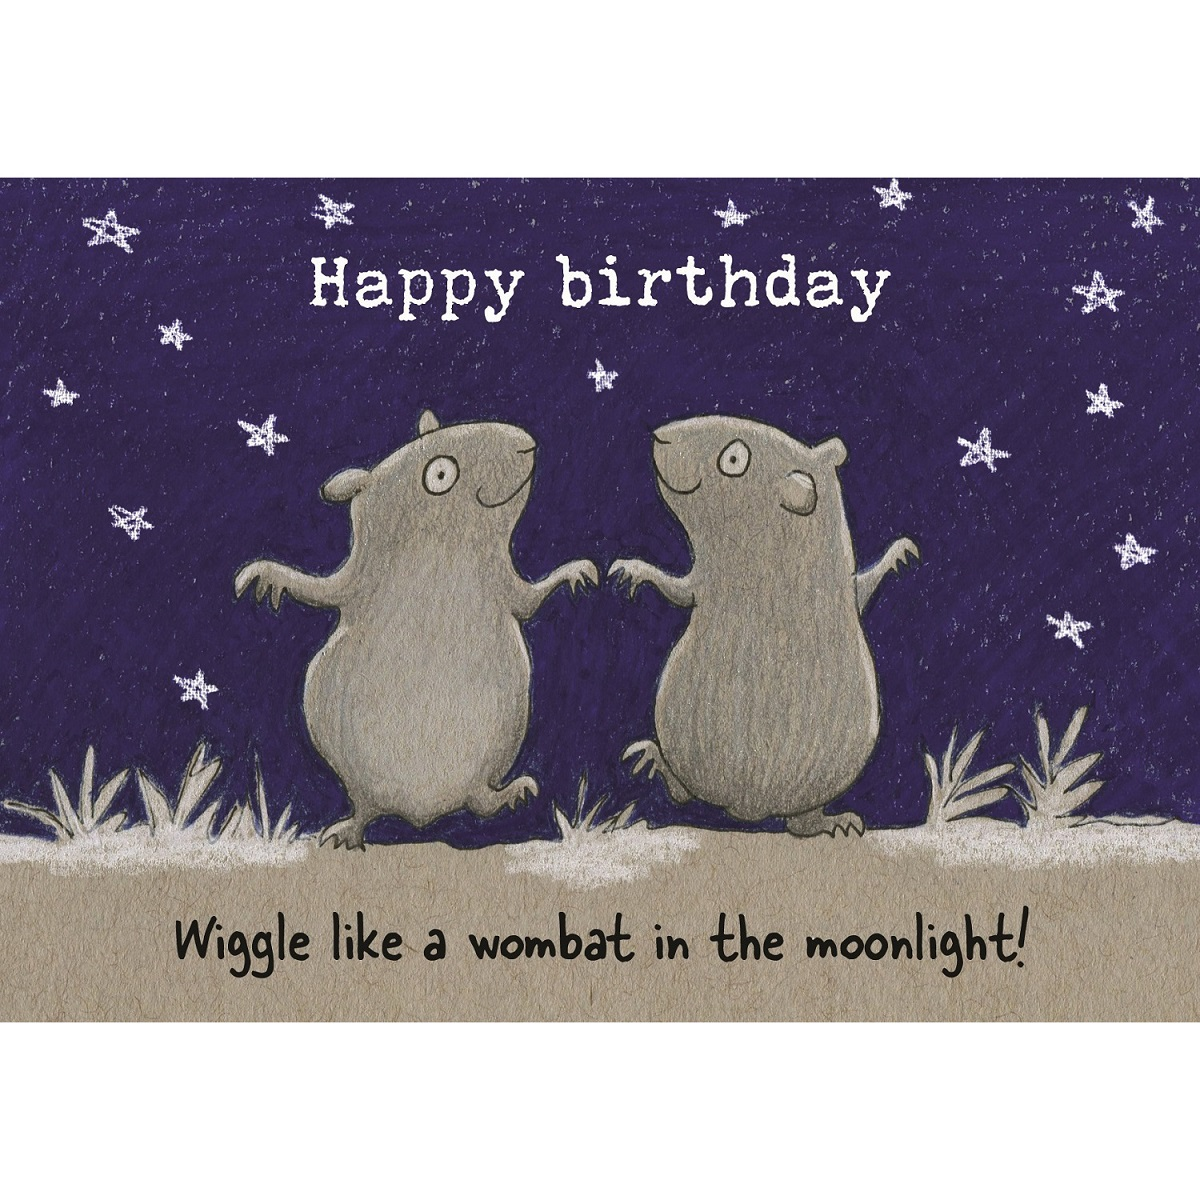 Get a wiggle on and check out these new cards!